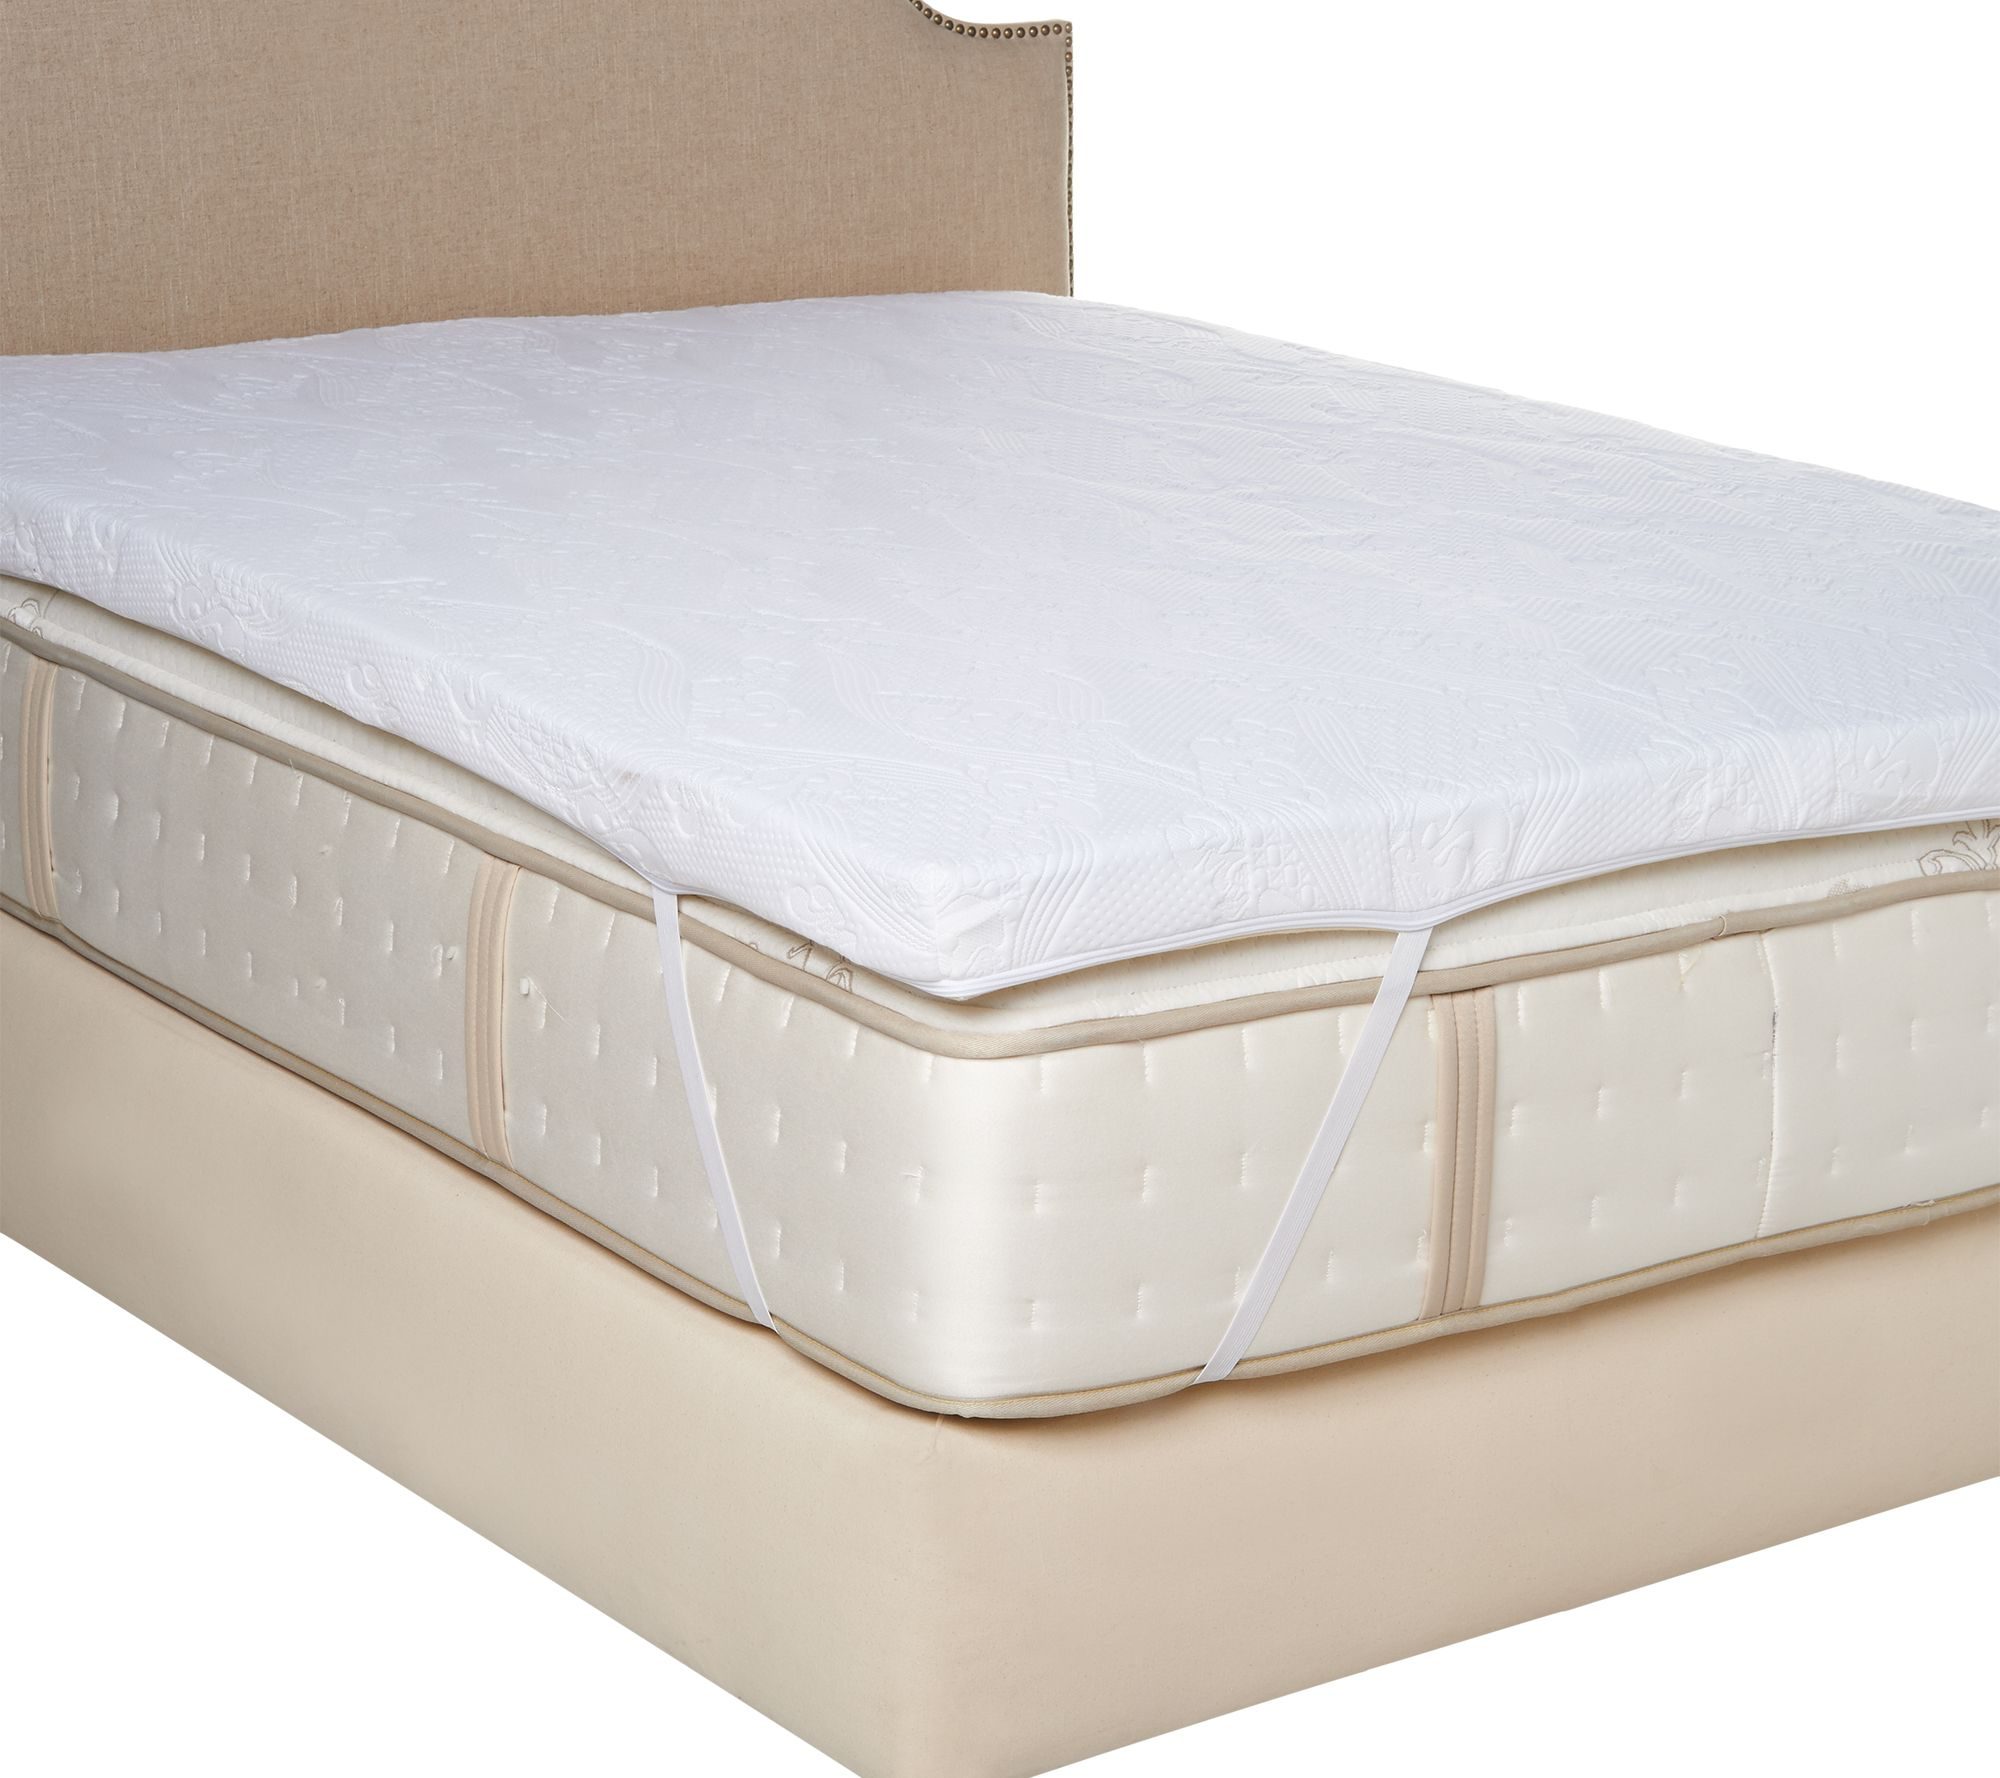 Mypillow Premium 3 Fl Mattress Topper With Gel And Dreamknit Cover Page 1 Qvc